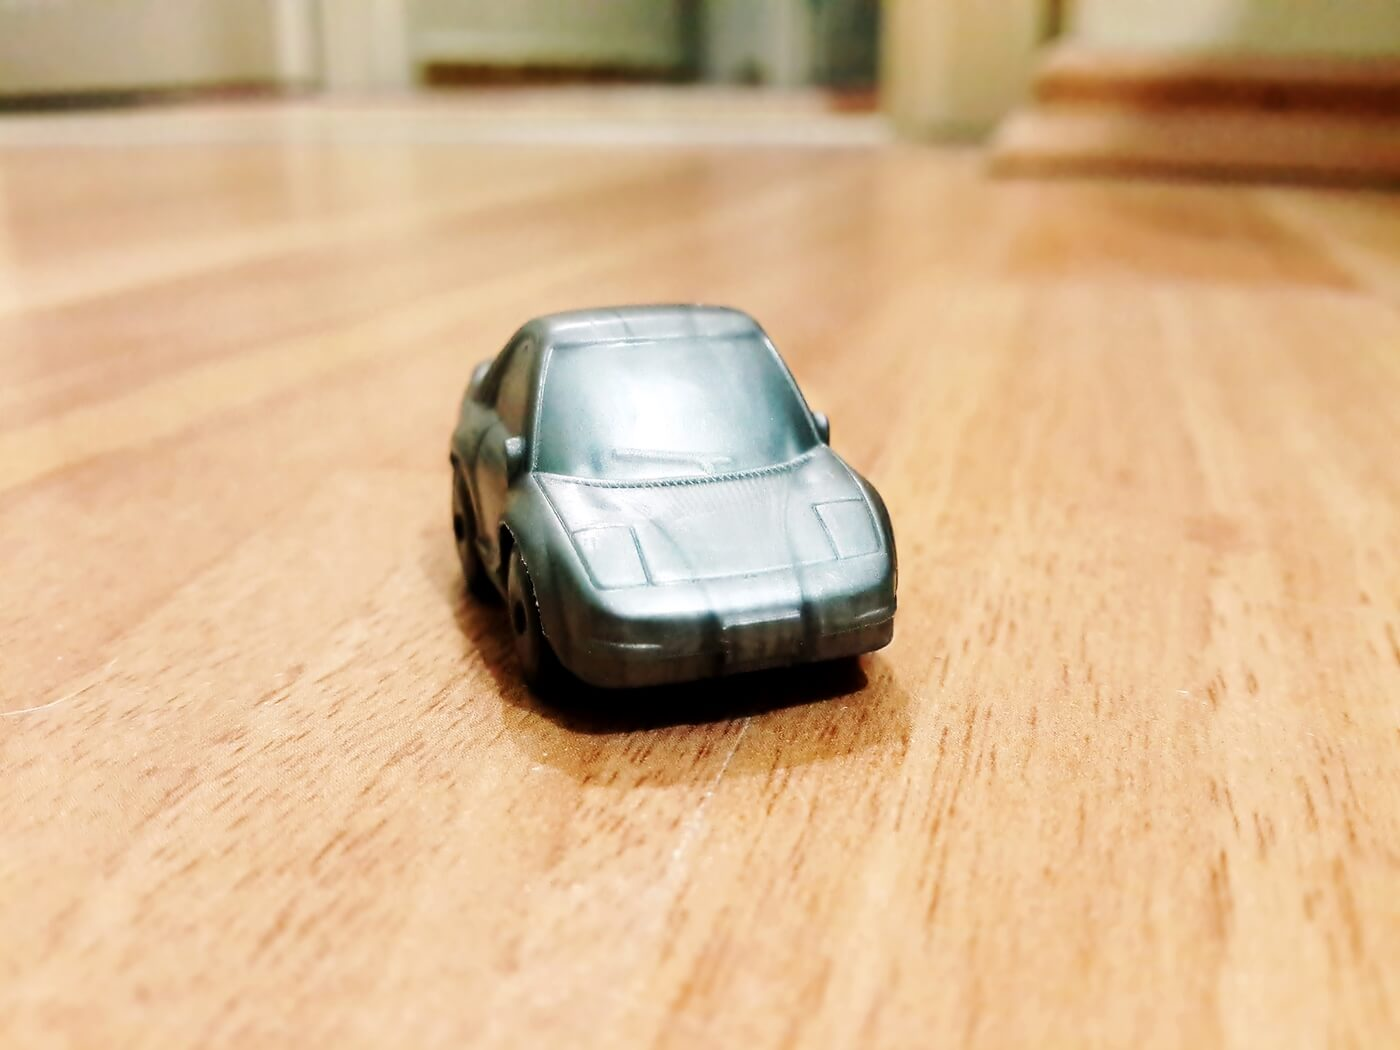 Gray Toy Car, Macro, Mini